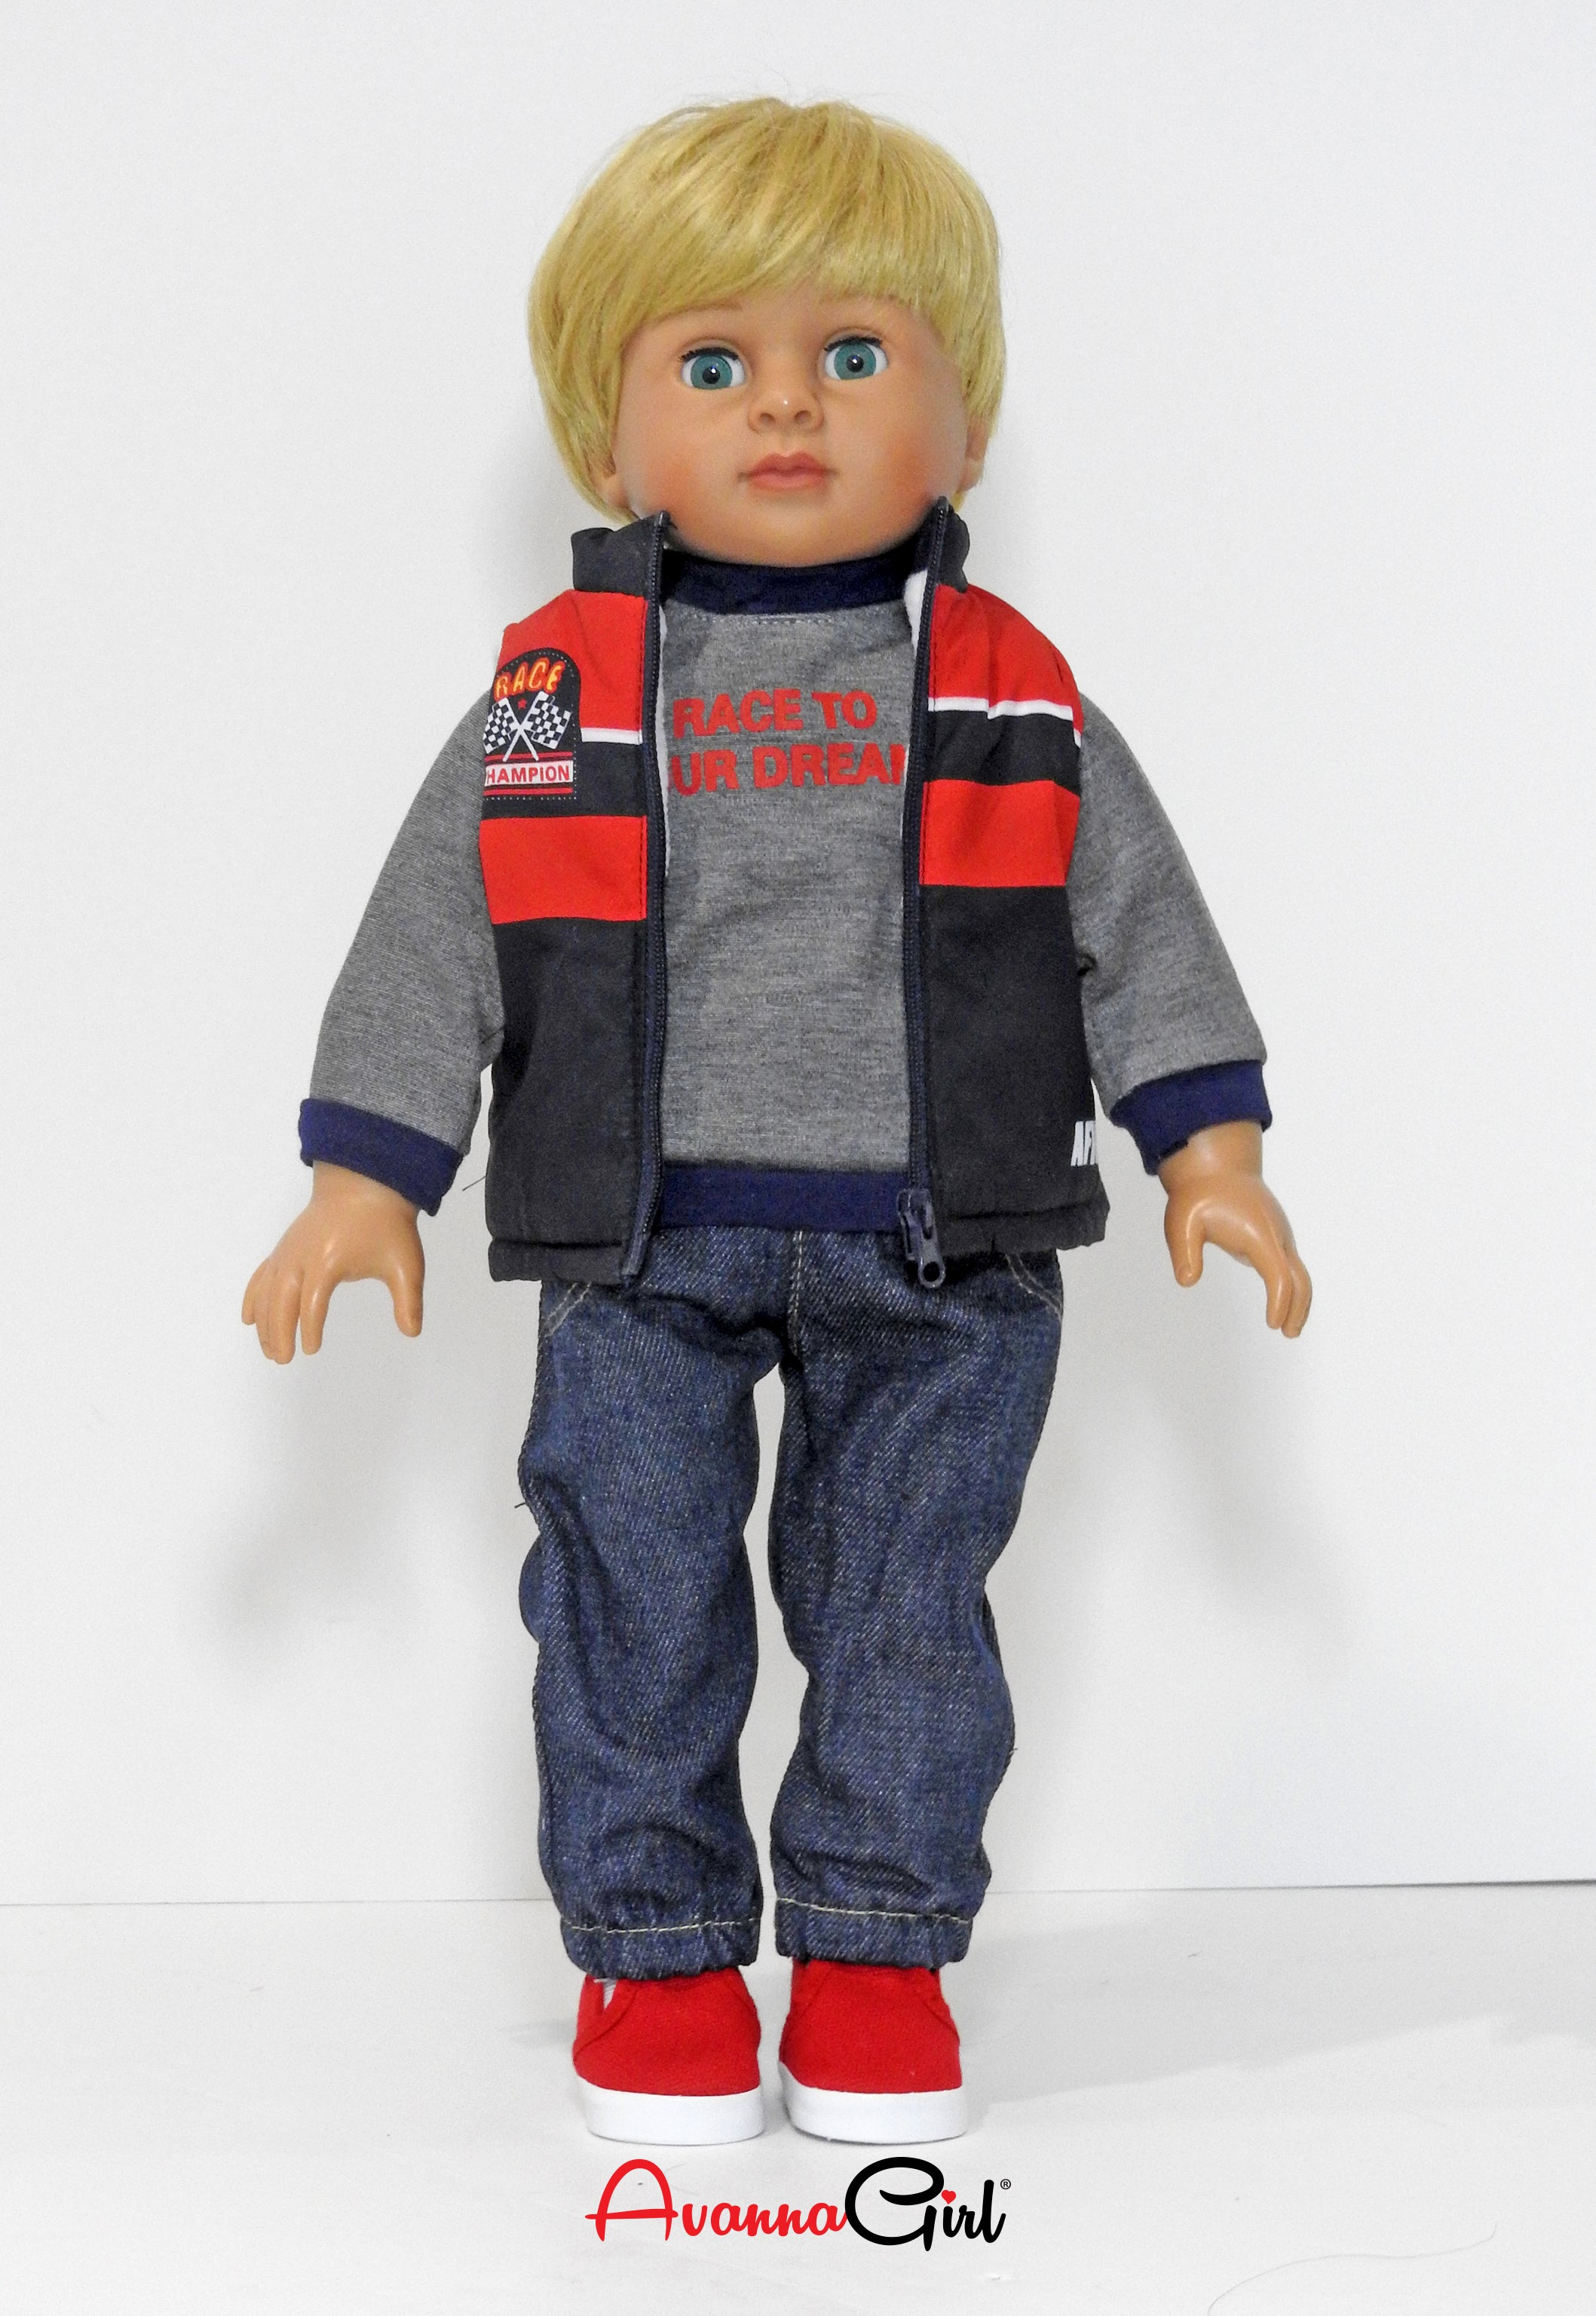 18 Inch Boy Doll Puffer Vest, Sweatshirt, Pants, and Sneakers